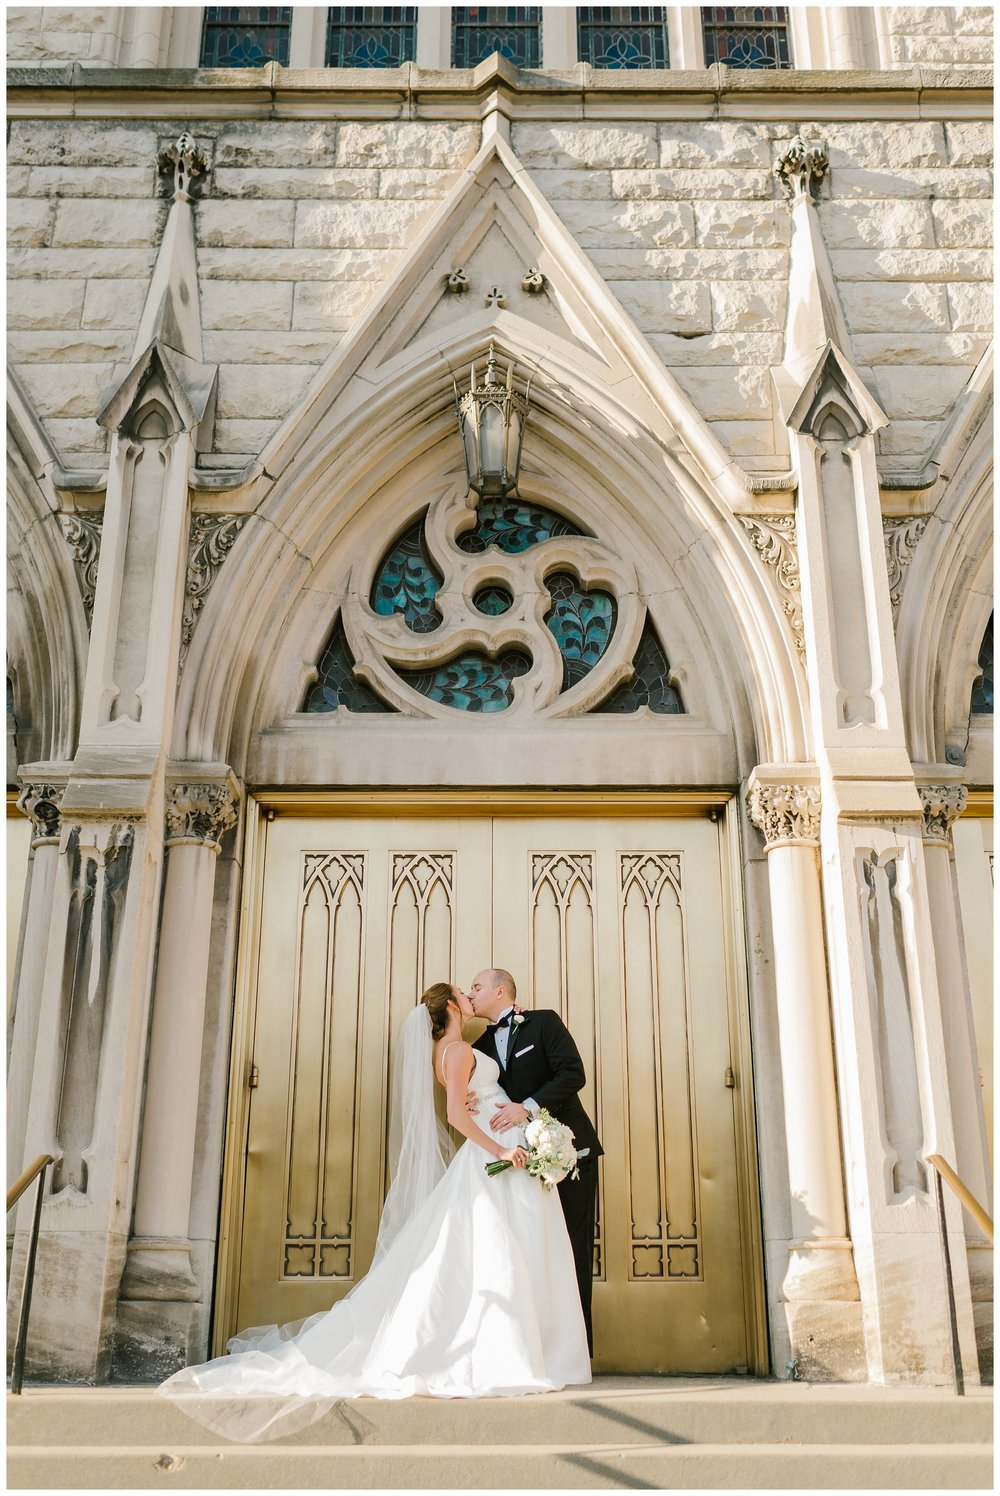 Rebecca_Shehorn_Photography_Indianapolis_Wedding_Photographer_7162.jpg